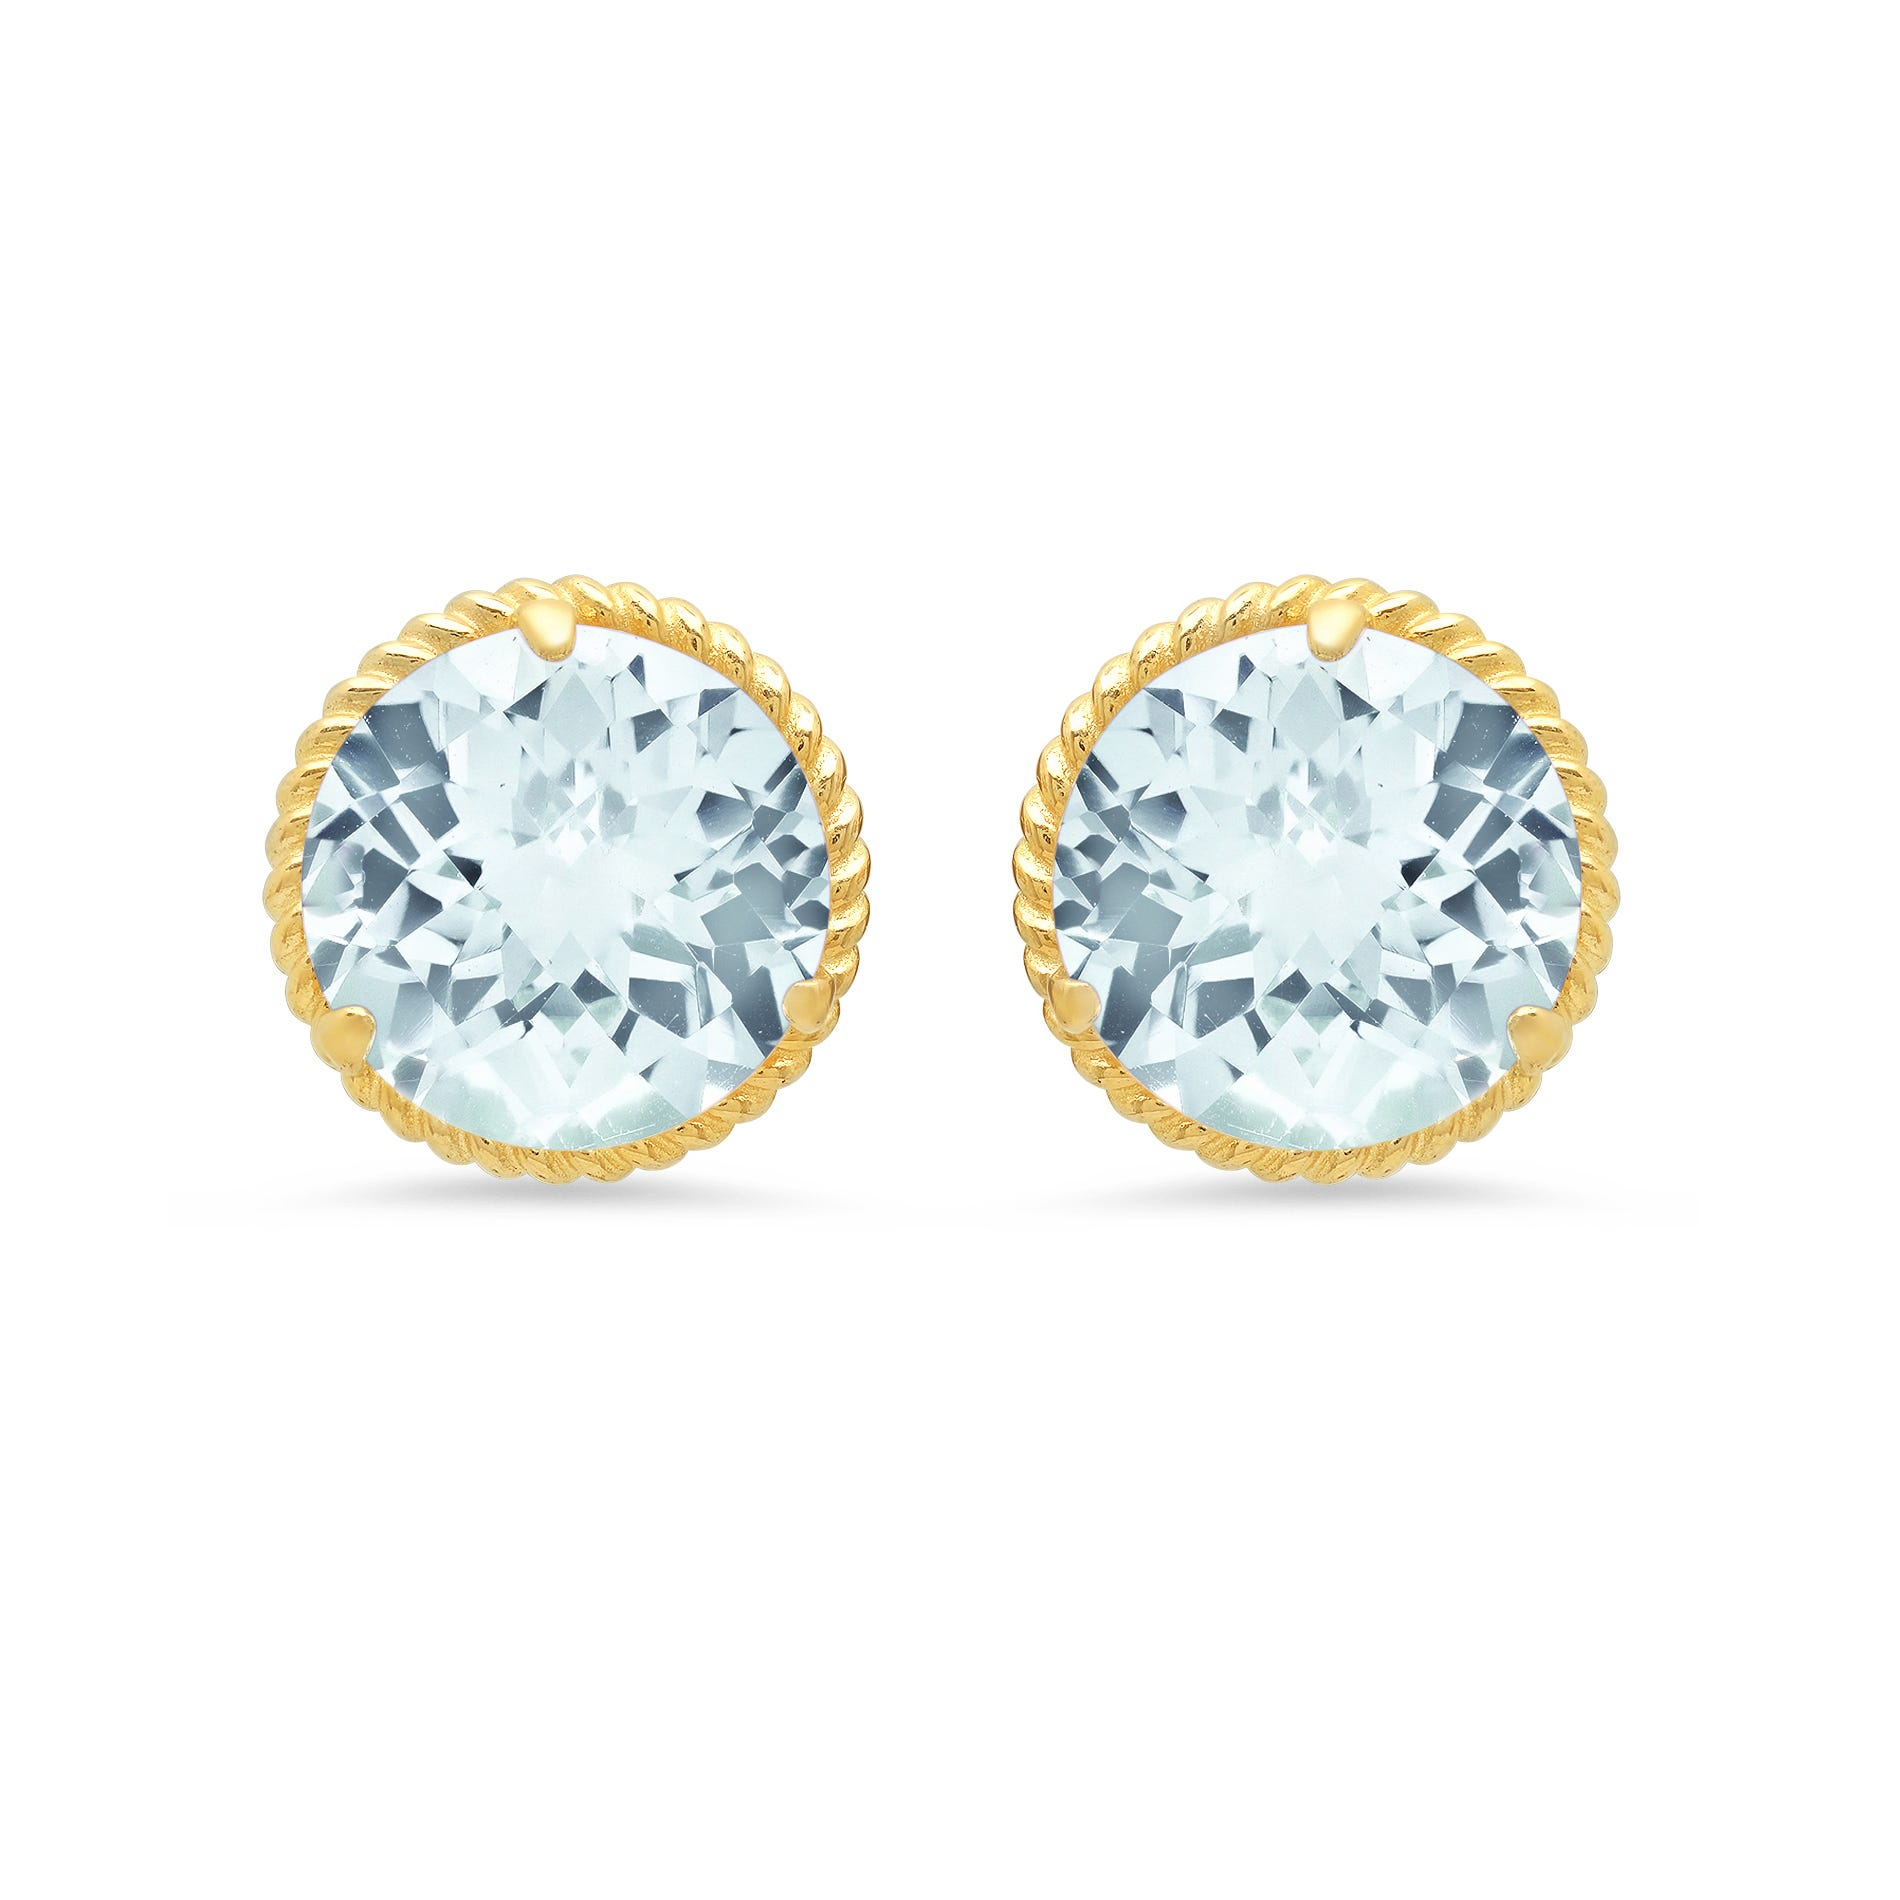 Aquamarine Roped Halo Stud Earrings in 14k Yellow Gold